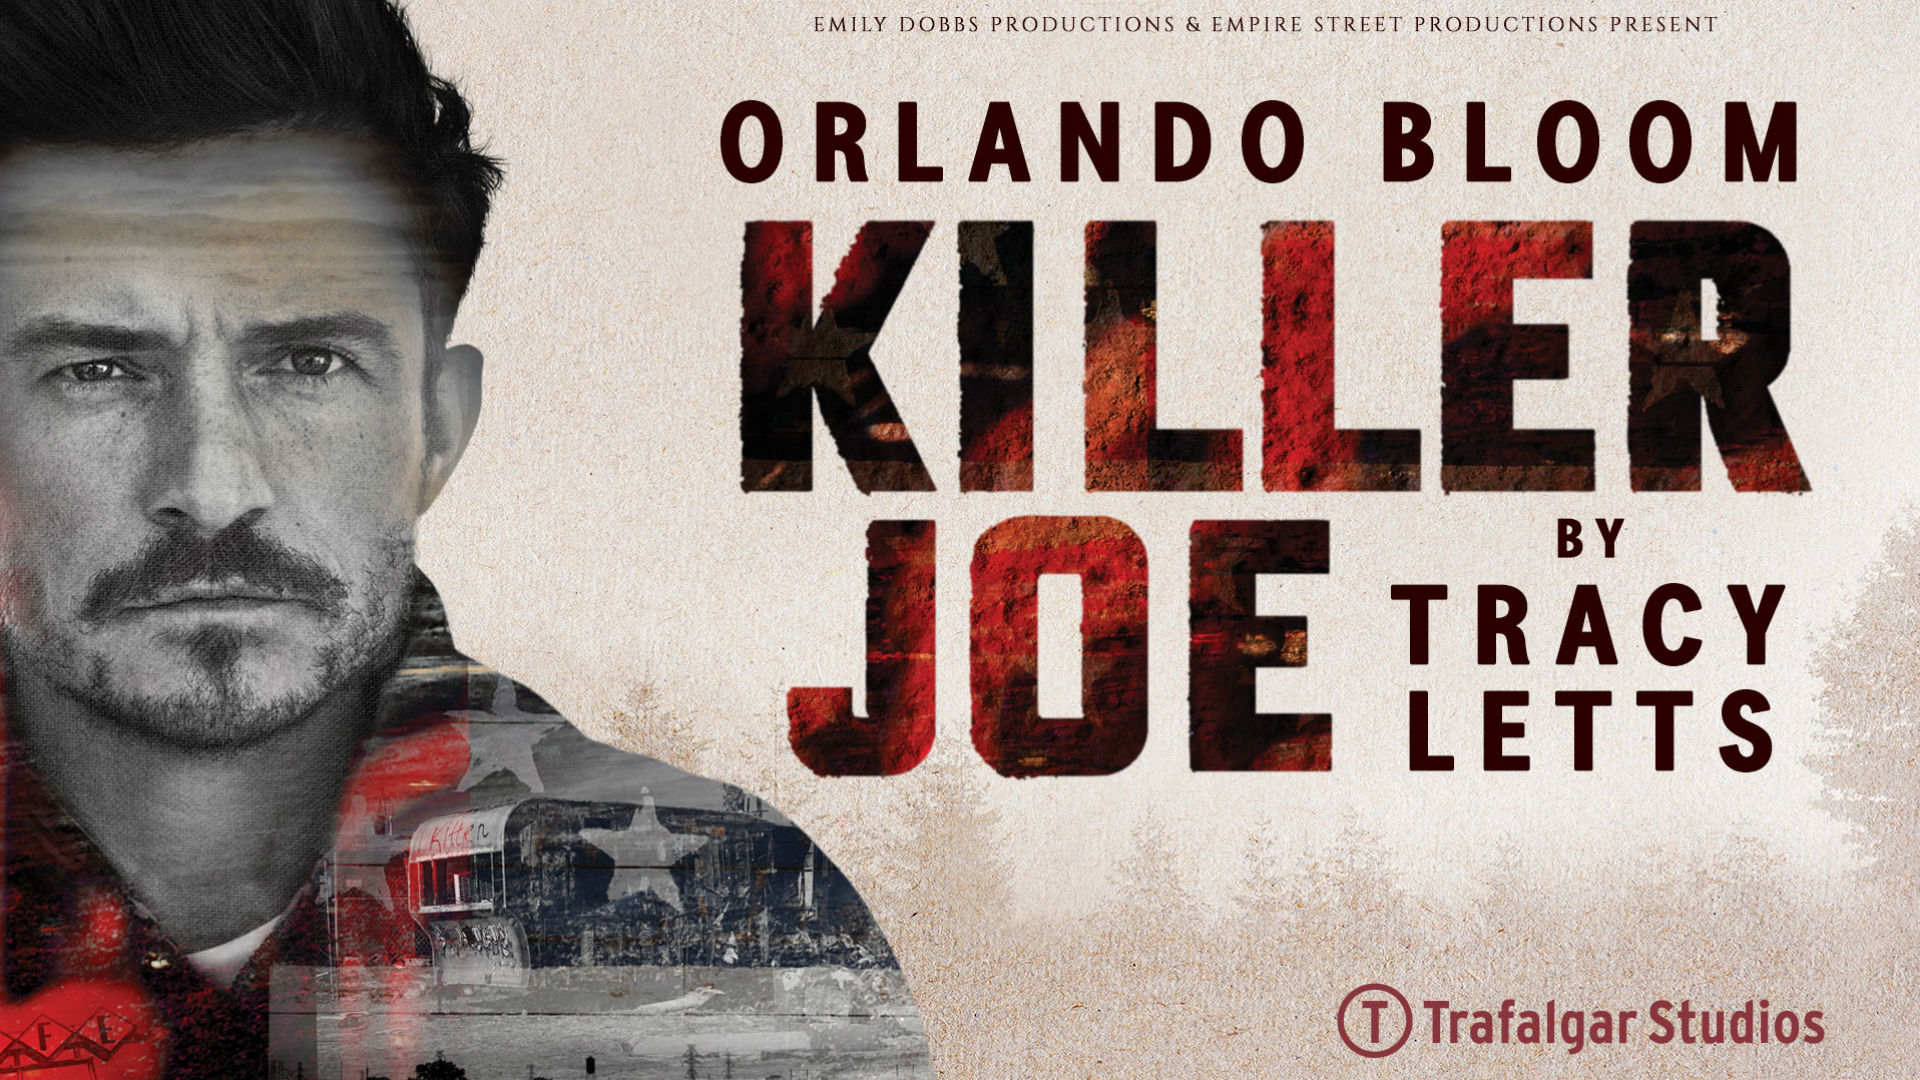 Orlando Bloom stars in Killer Joe